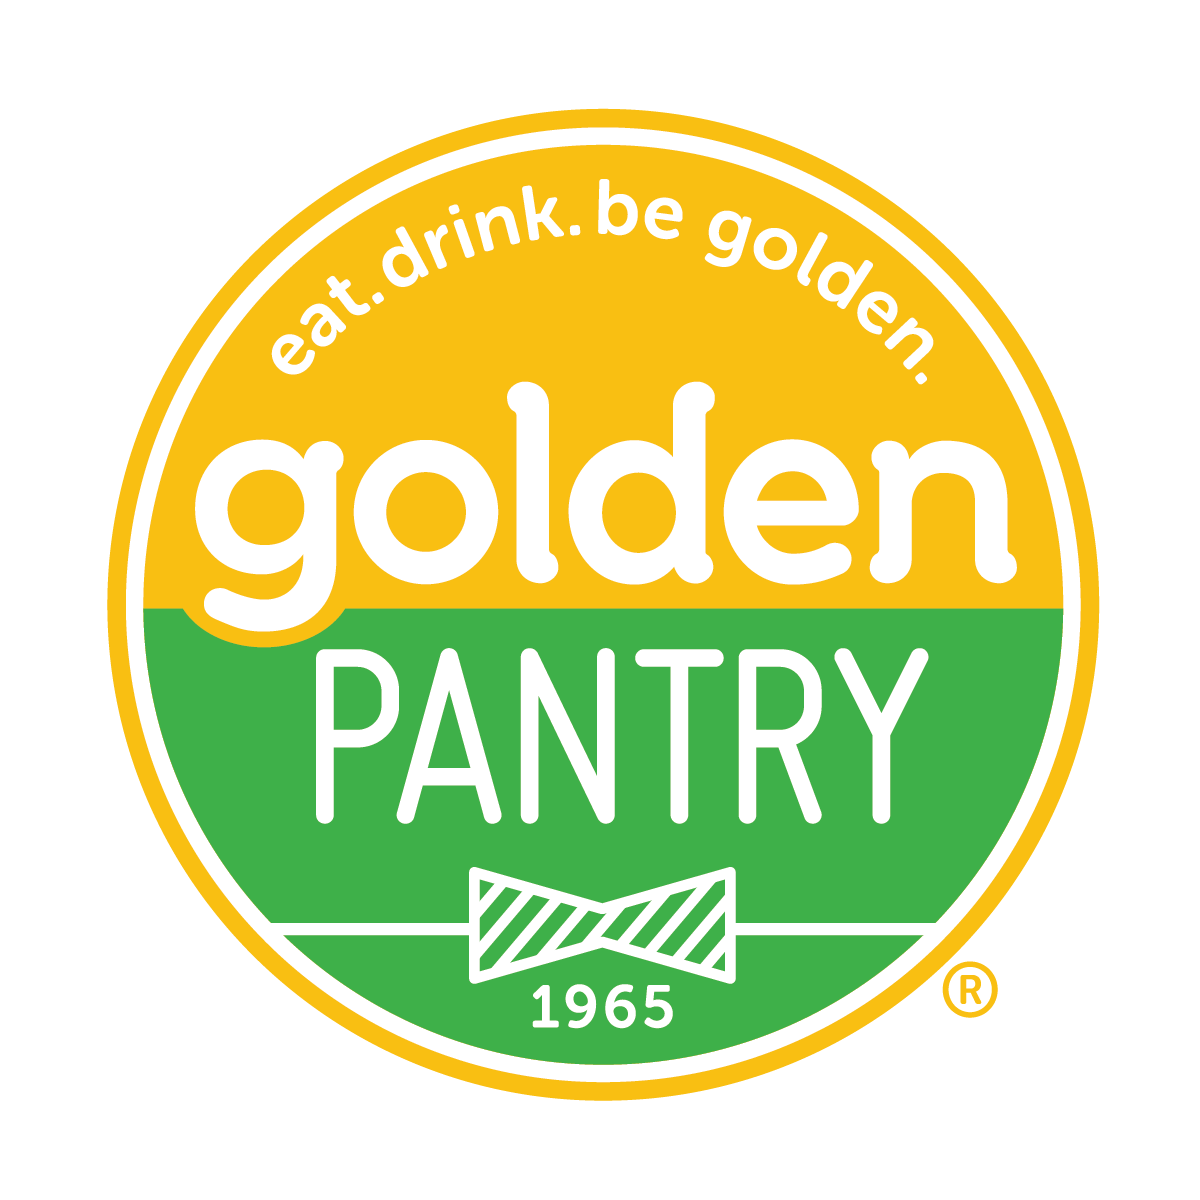 Golden Pantry Food Stores